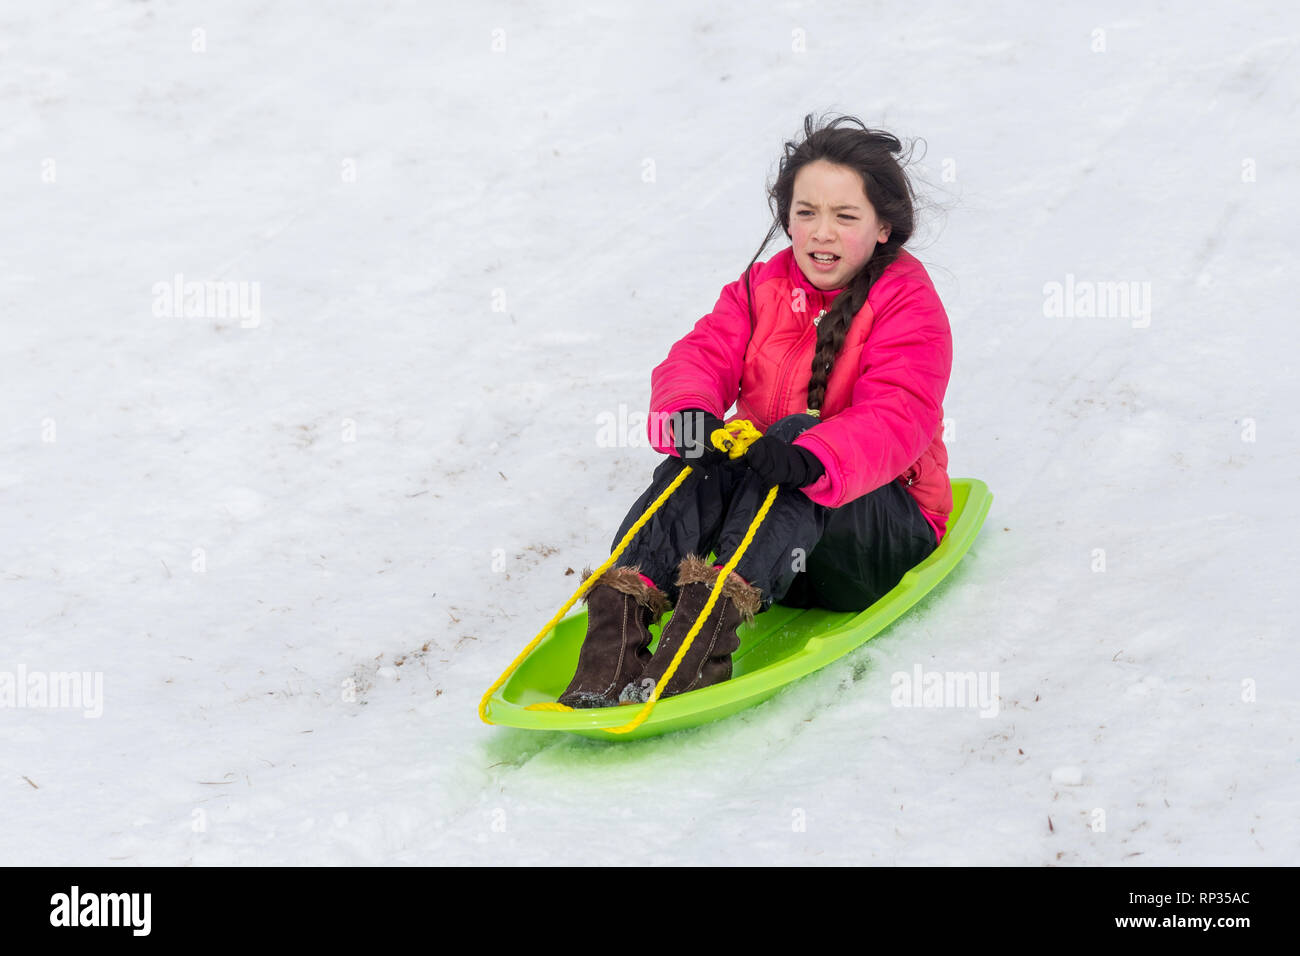 Young Asian girl with pink hat and jacket in snow riding sled Stock Photo